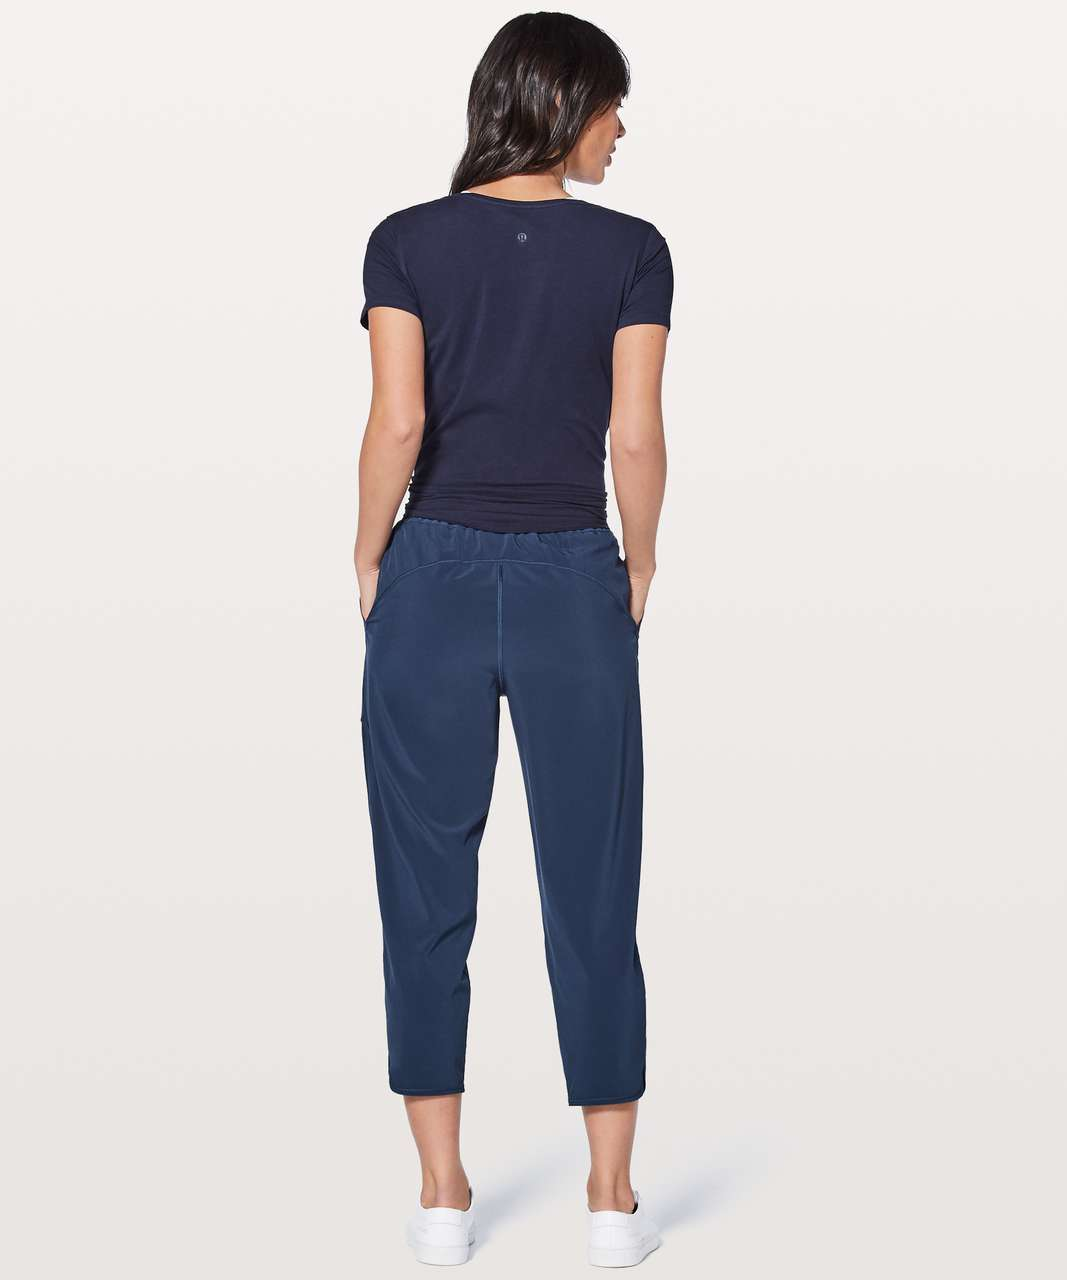 "Lululemon Final Play Crop 23"" - Mineral Blue"